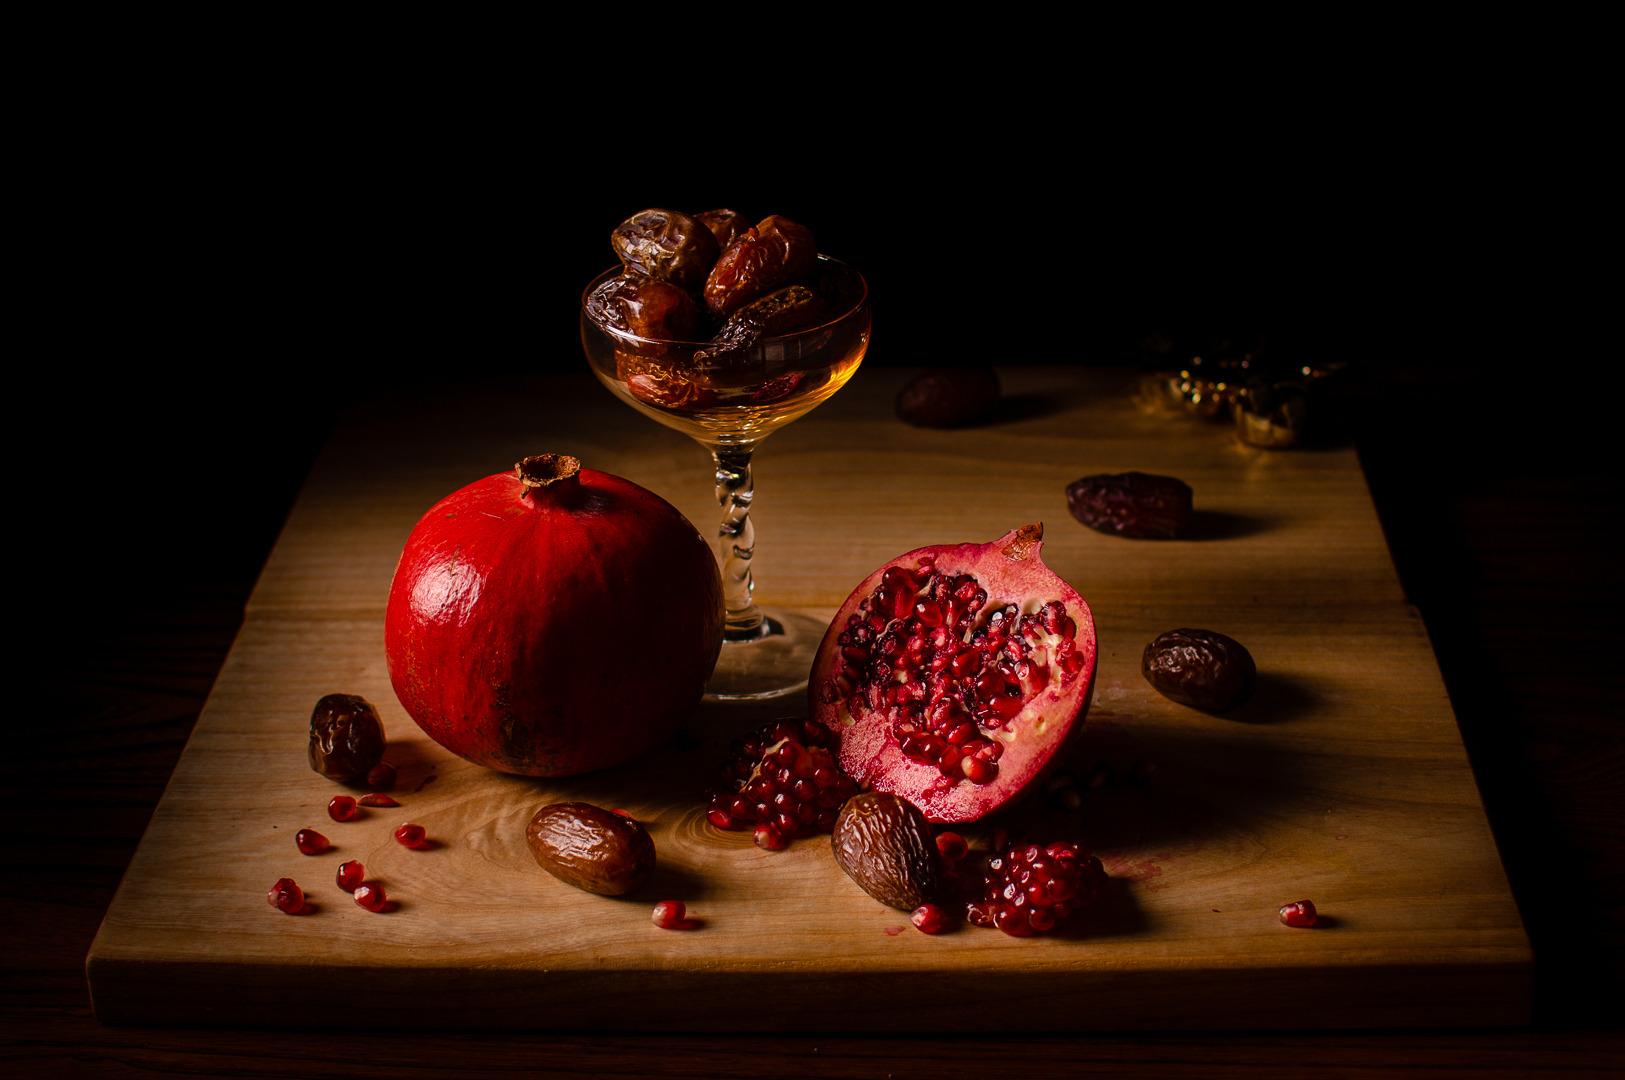 Dates and Pomegranate